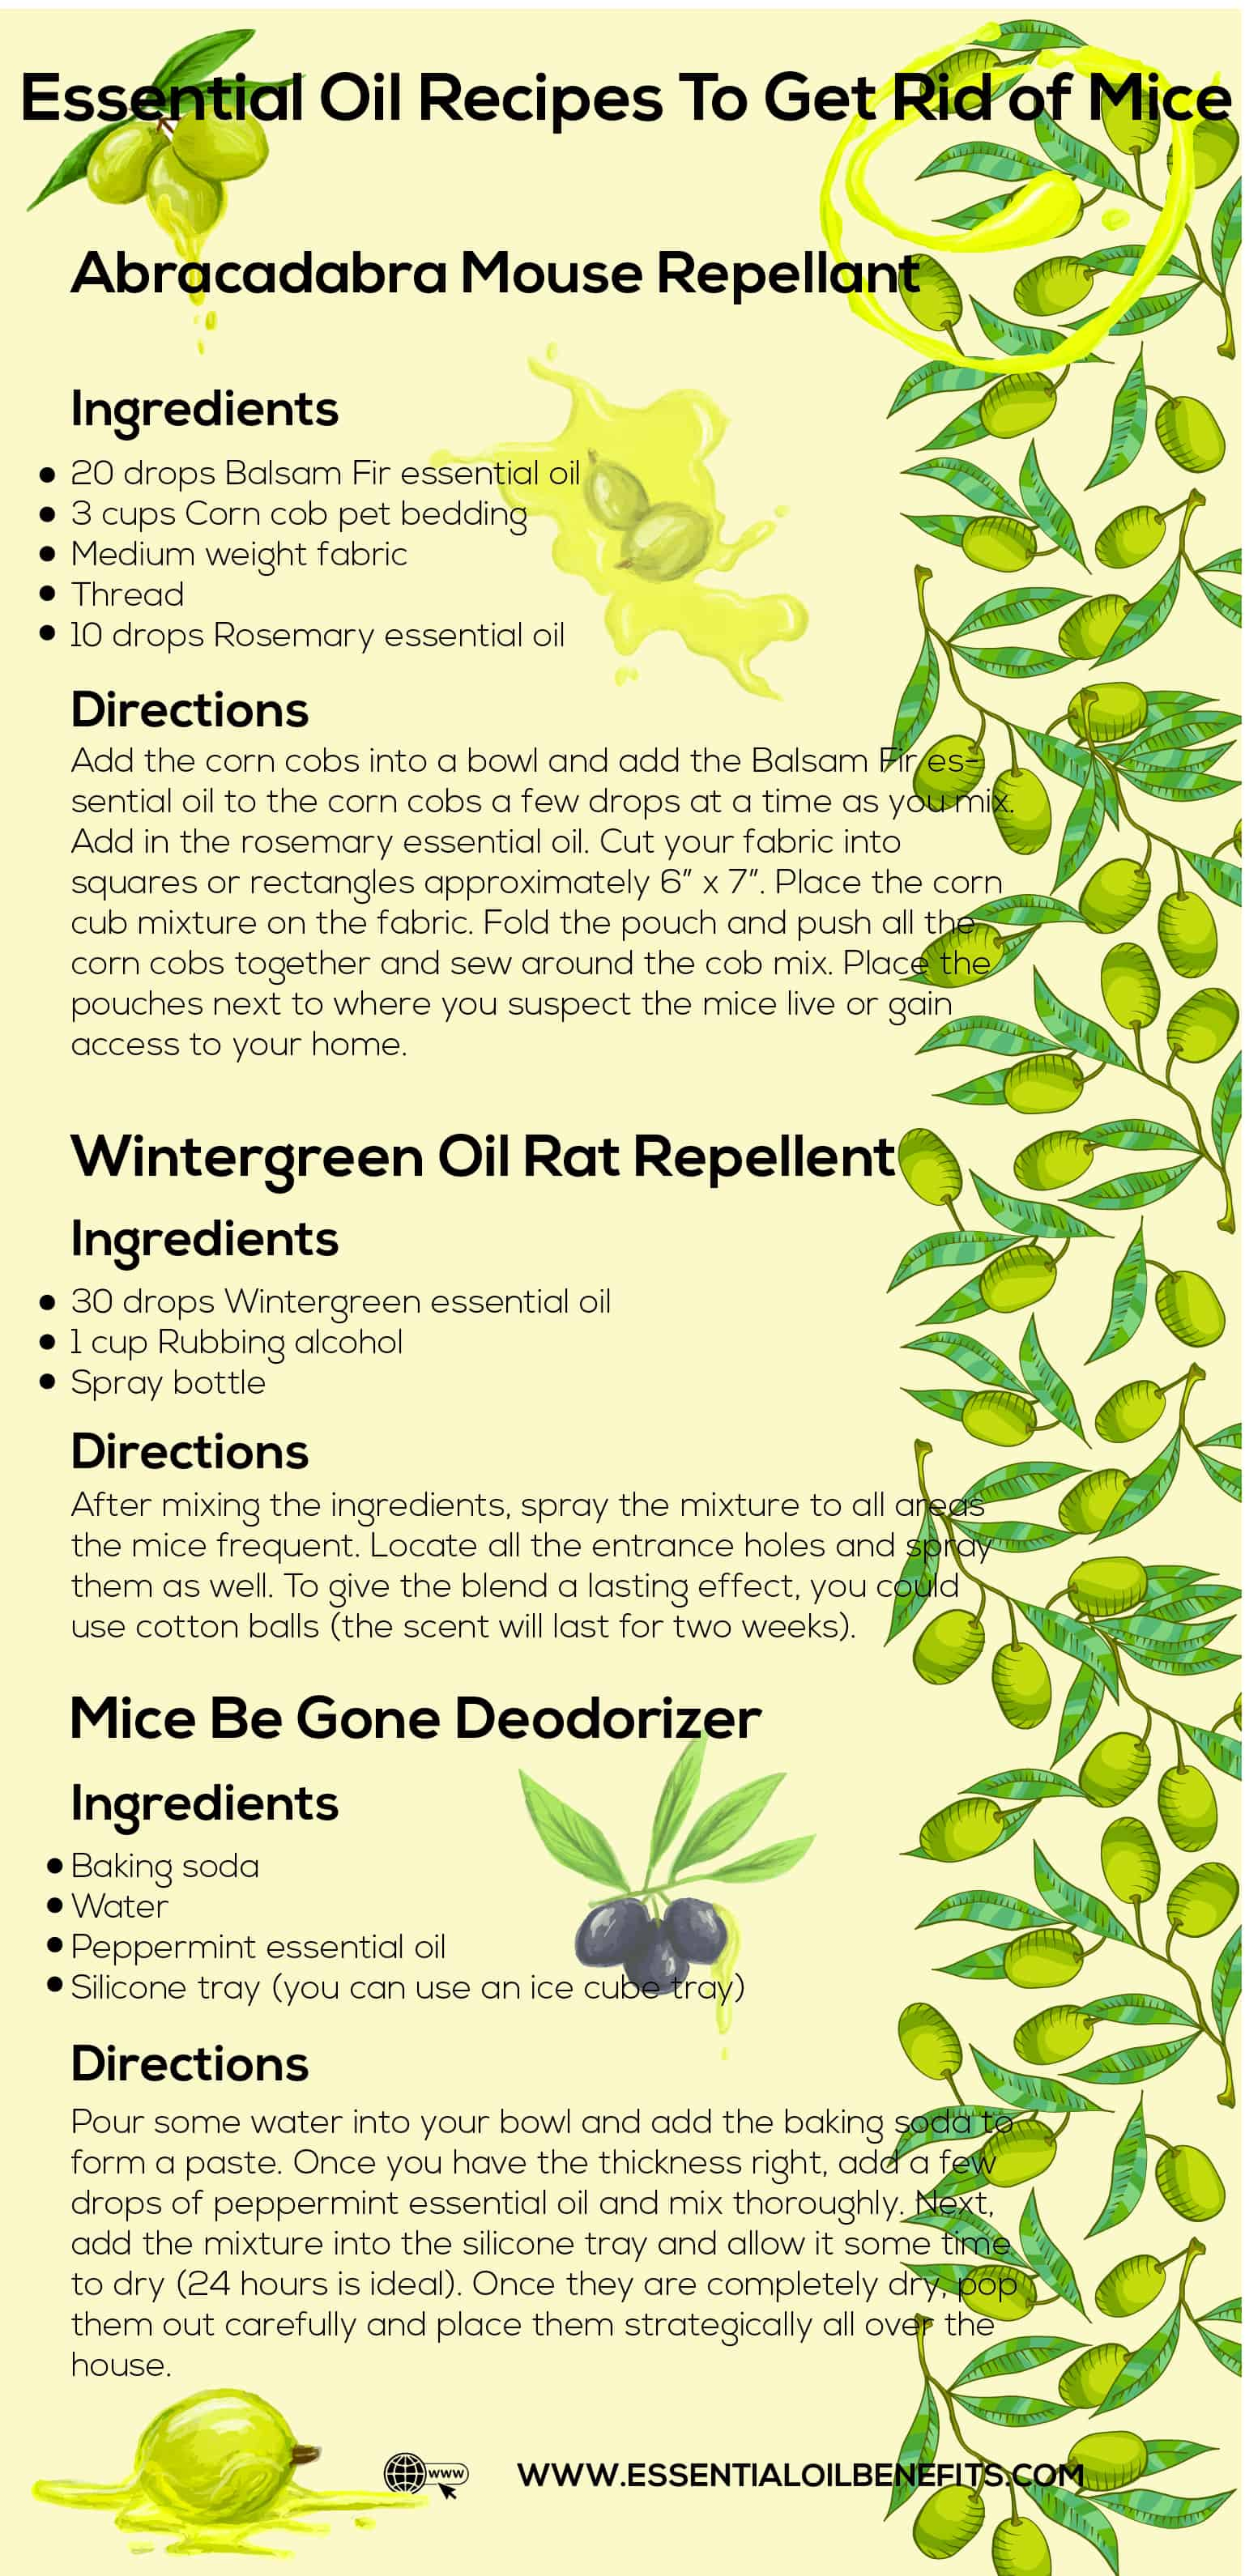 Best Ways To Get Rid Of Mice Naturally Using Essential Oils Essential Oil Benefits